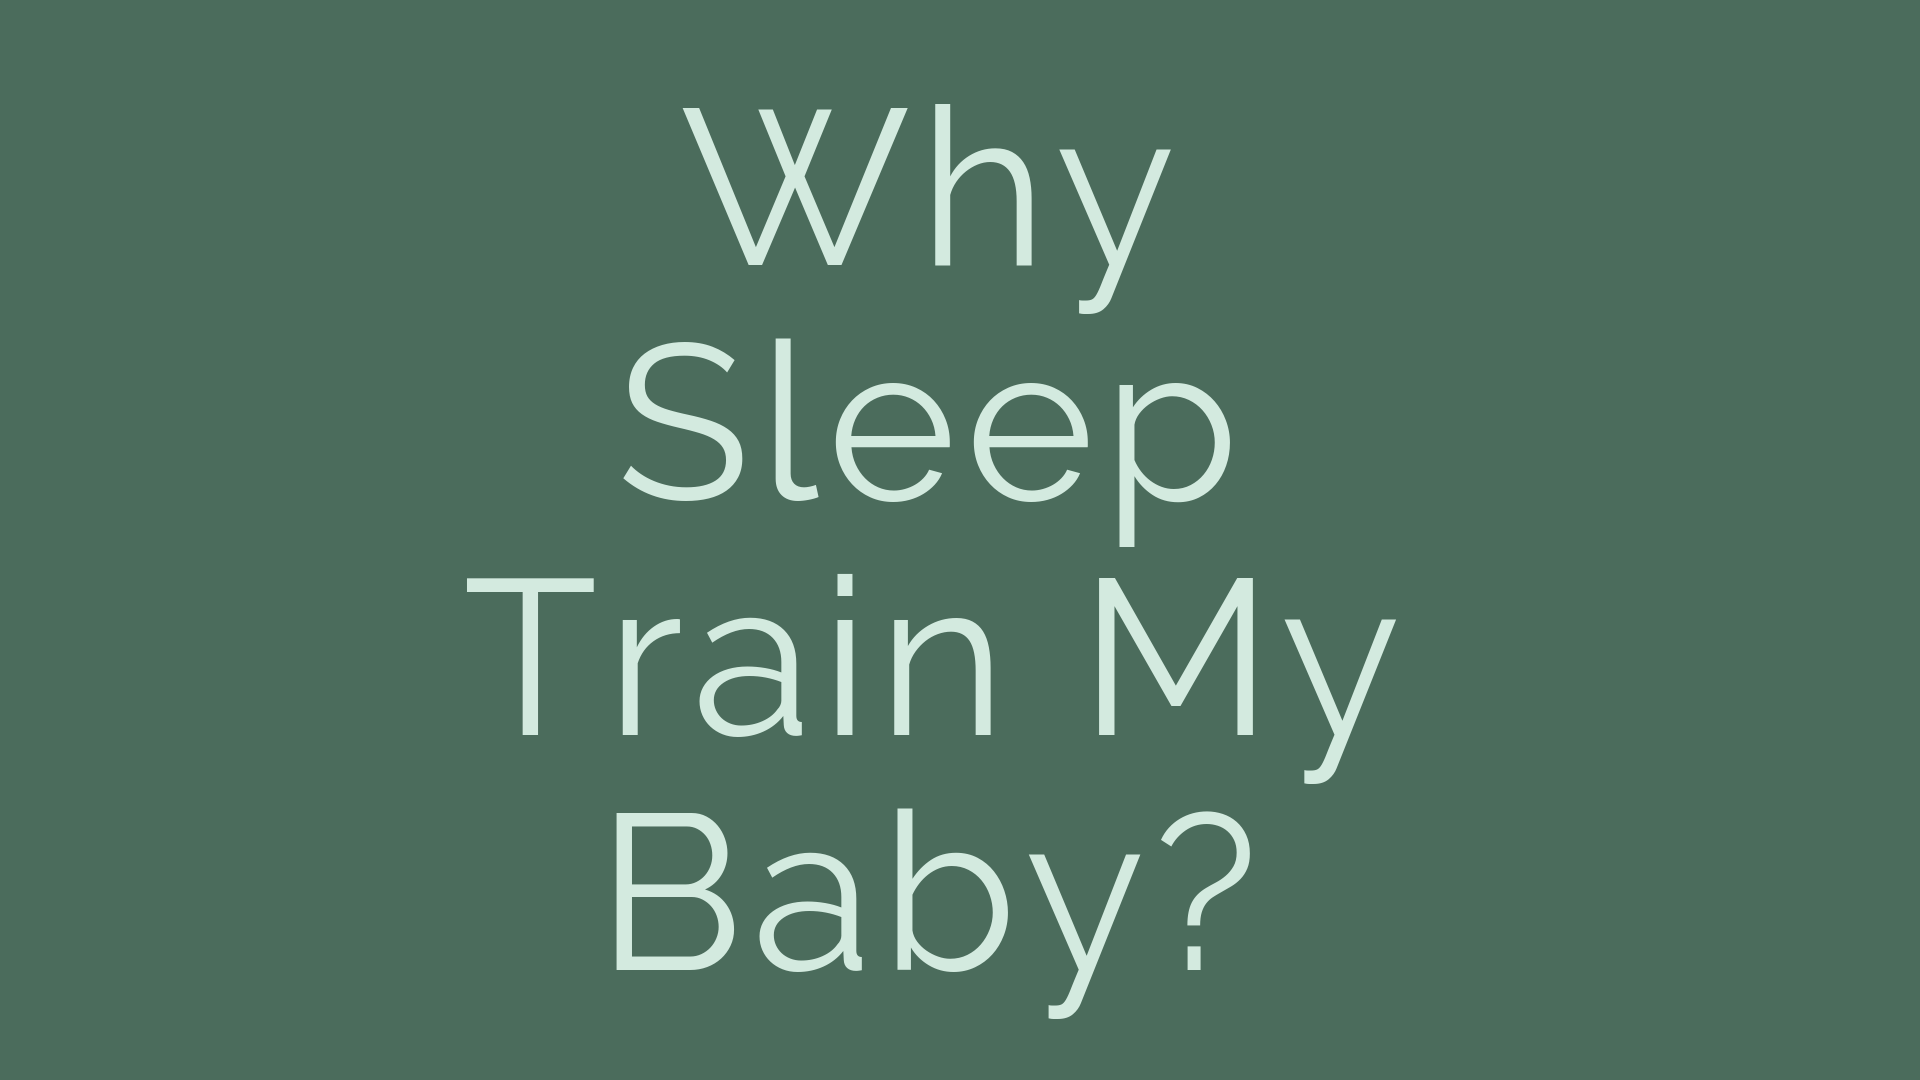 Why sleep train my baby?